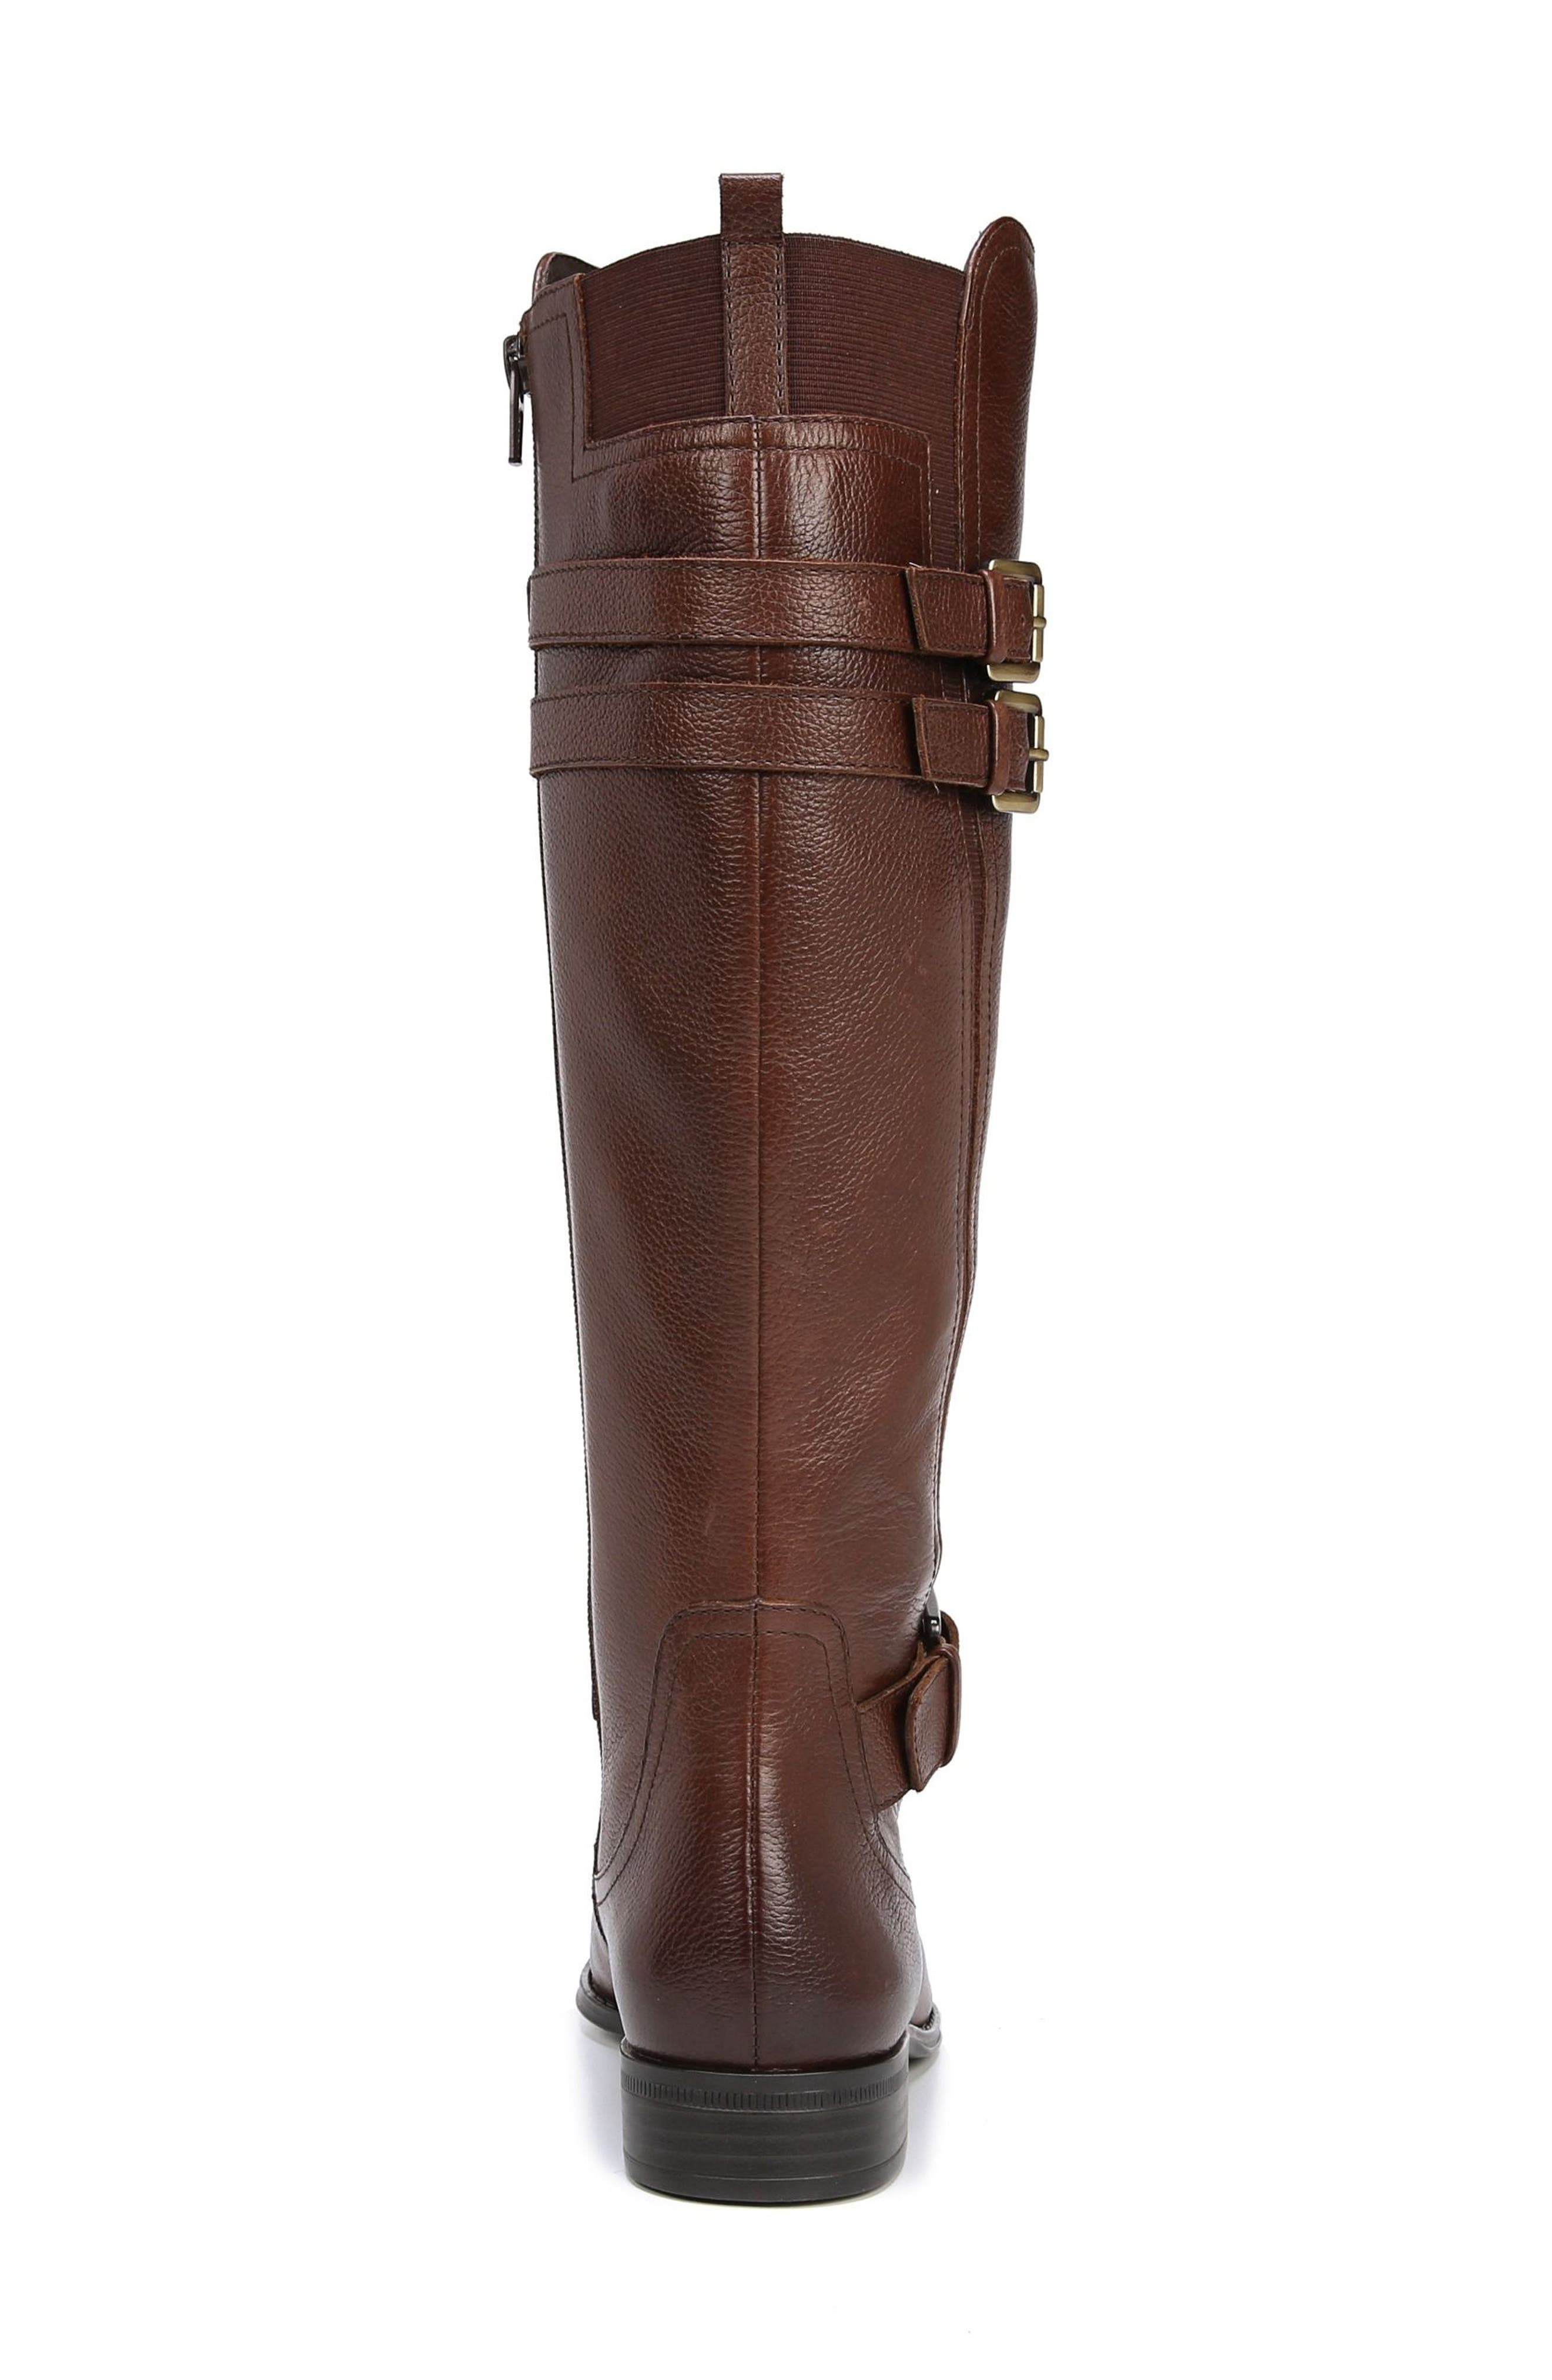 NATURALIZER, Jessie Knee High Riding Boot, Alternate thumbnail 9, color, CHOCOLATE LEATHER